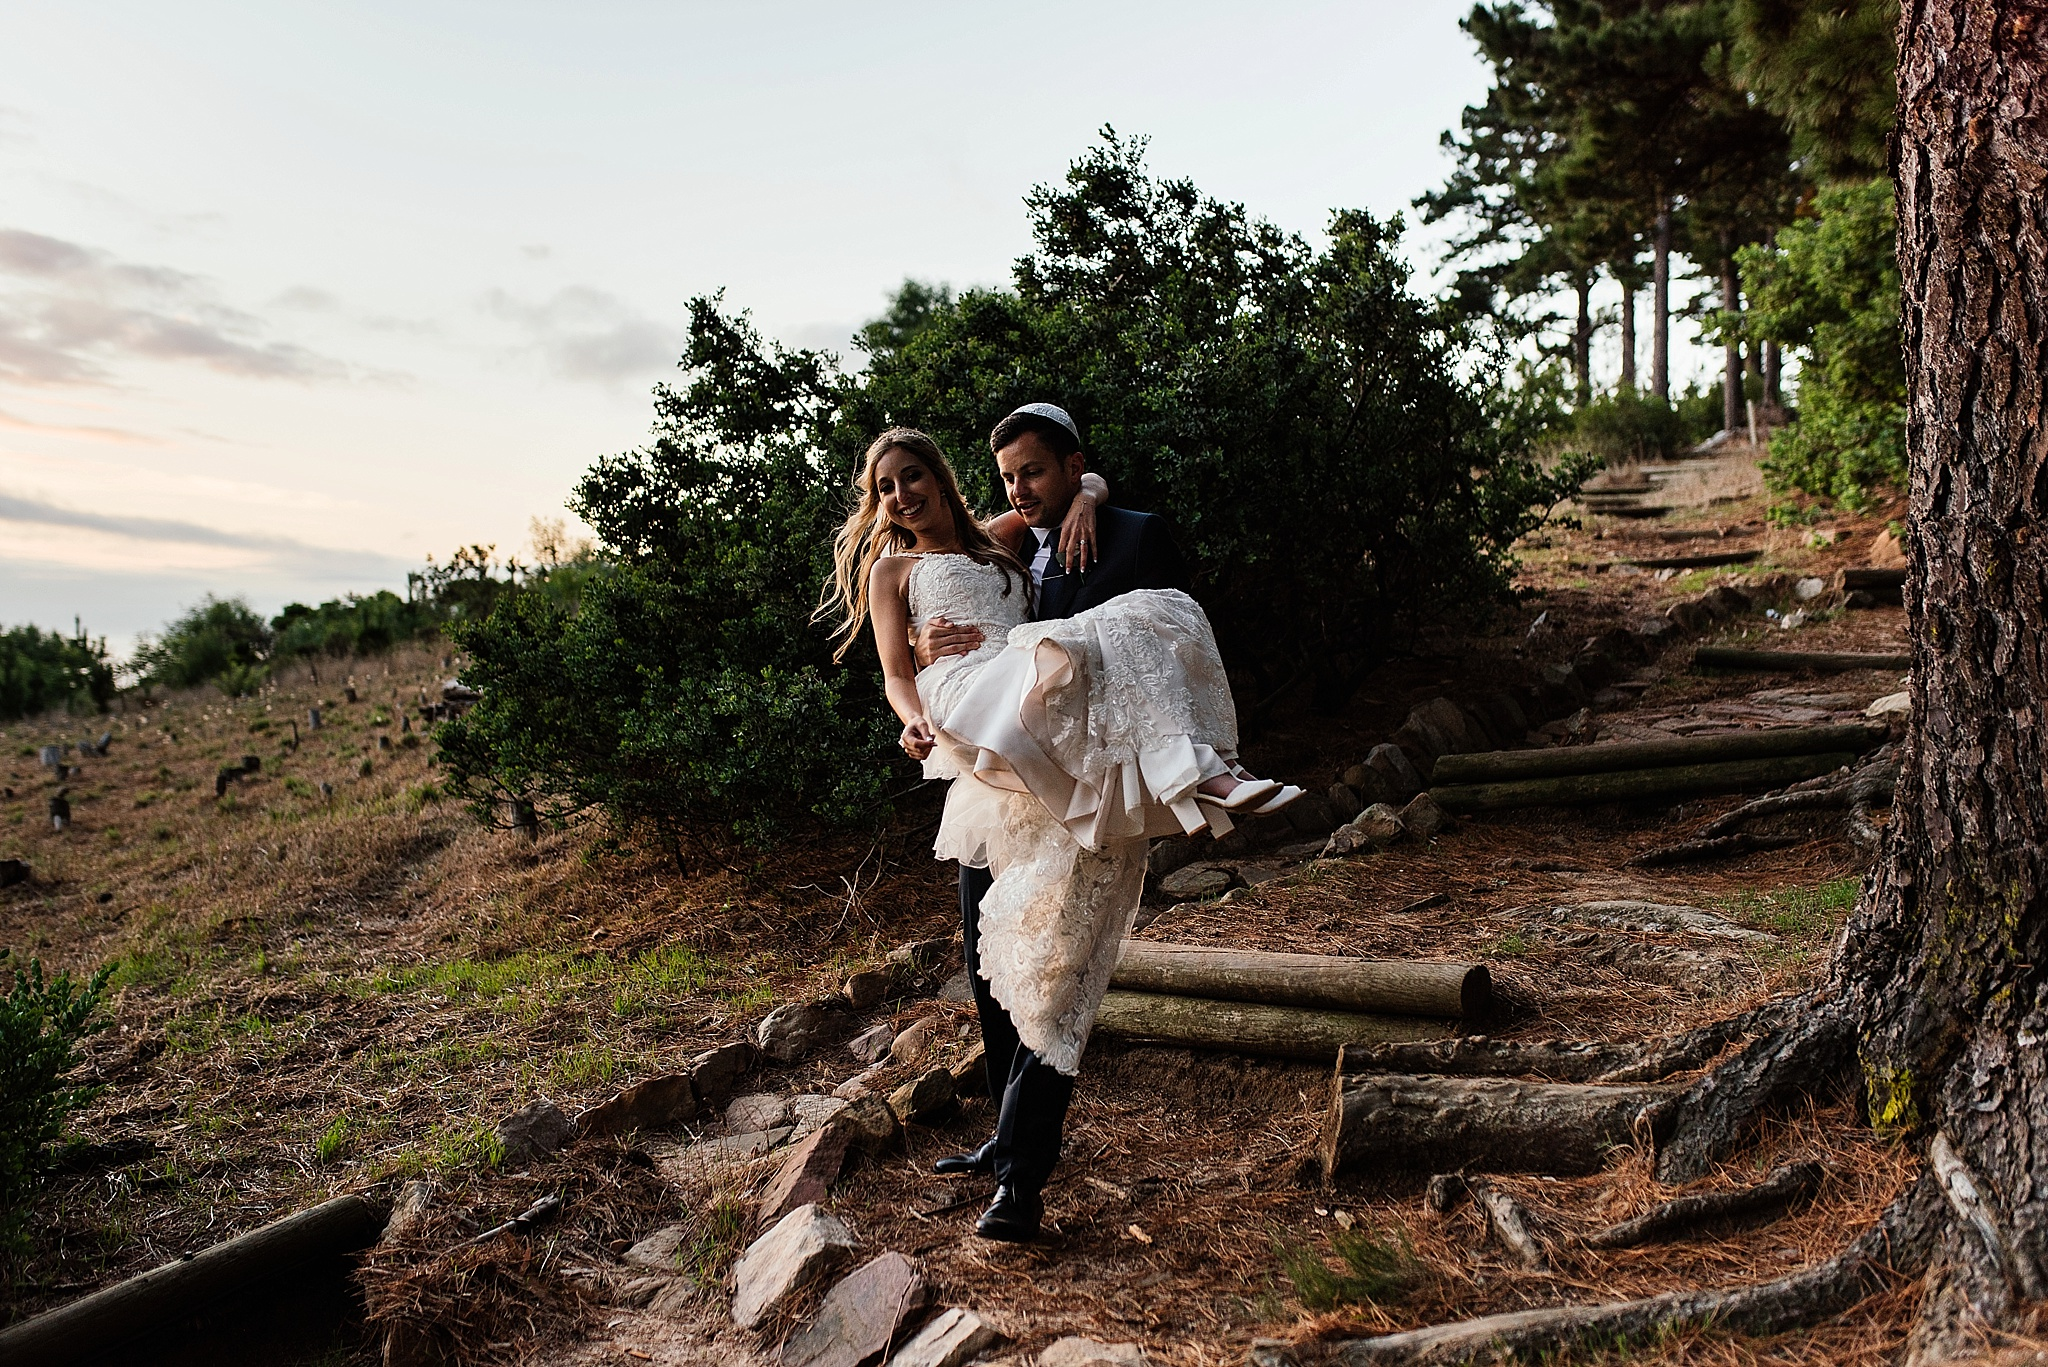 Cape Town Wedding Photographer Darren Bester - SuikerBossie - Stephen and Mikaela_0044.jpg